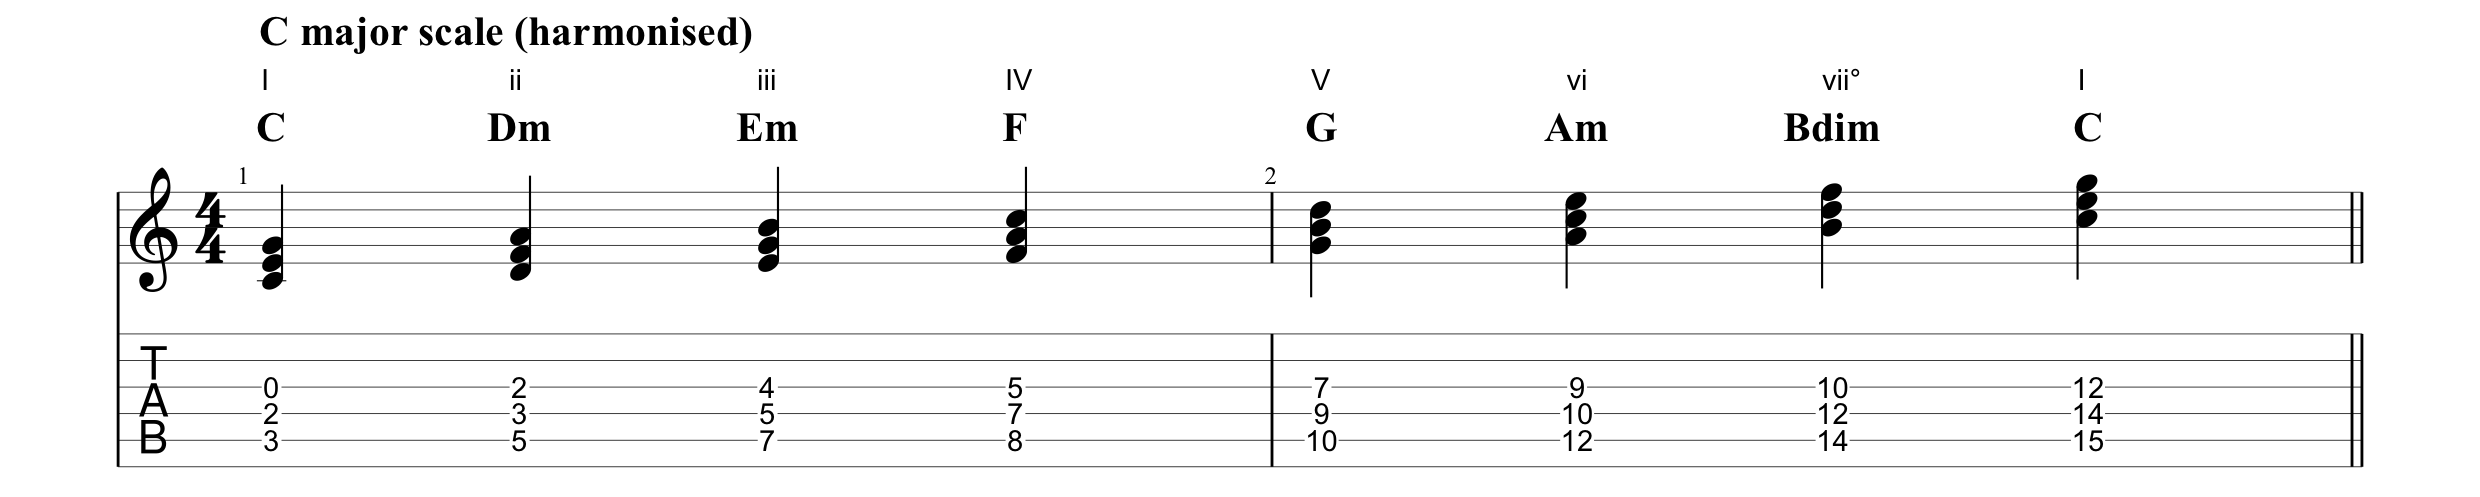 C major scale harmonised.png